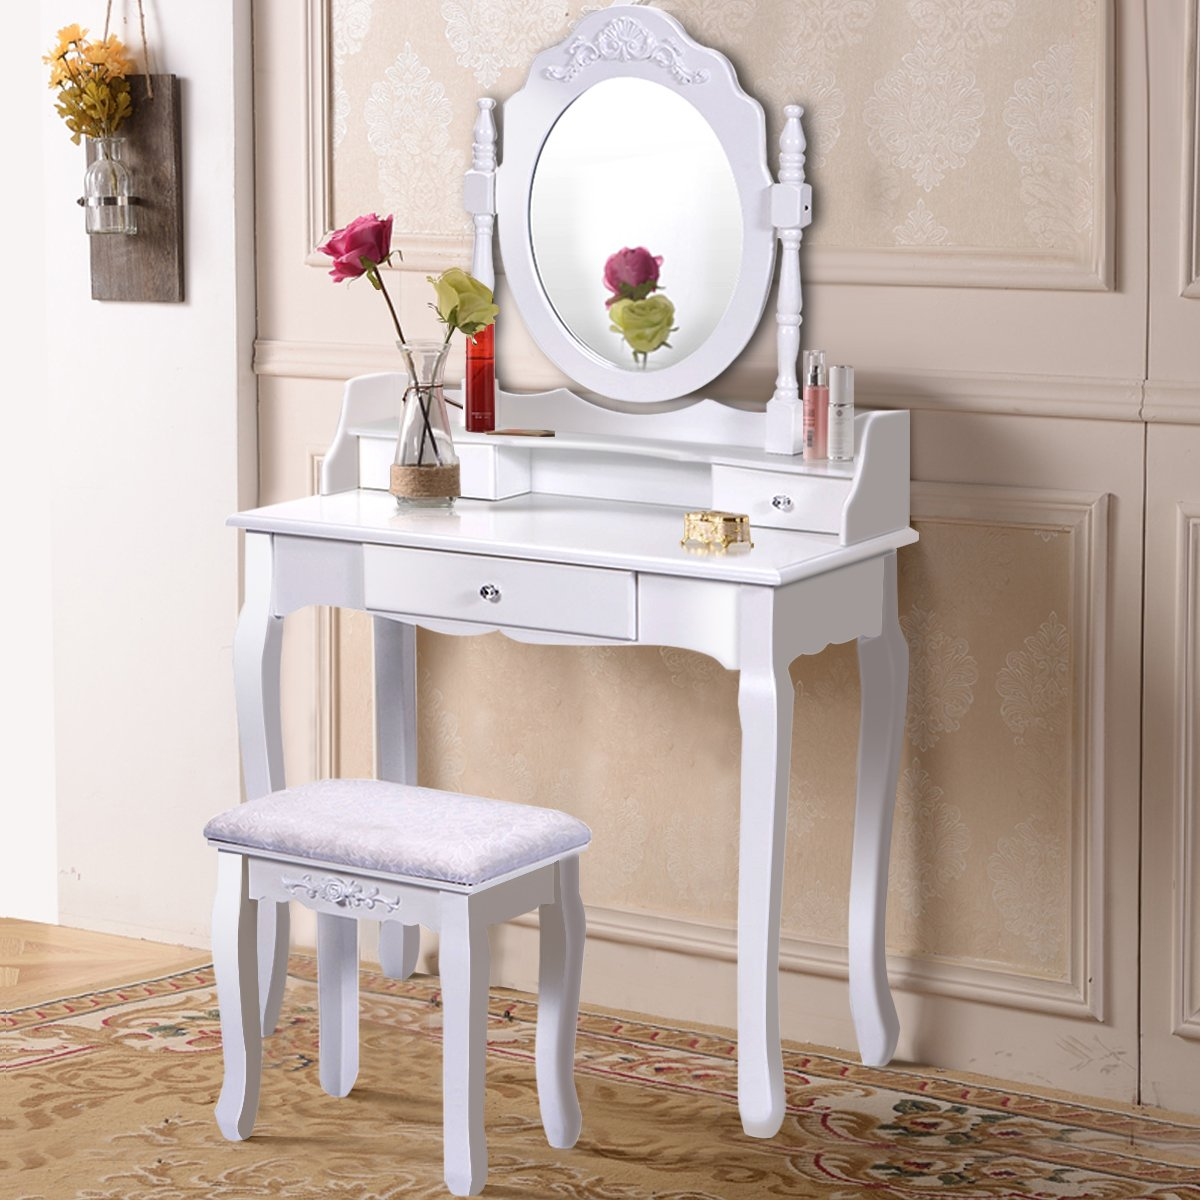 Giantex Bathroom Vanity Wood Makeup Dressing Table Stool Set with Mirror (Round Mirror, 3 Drawers